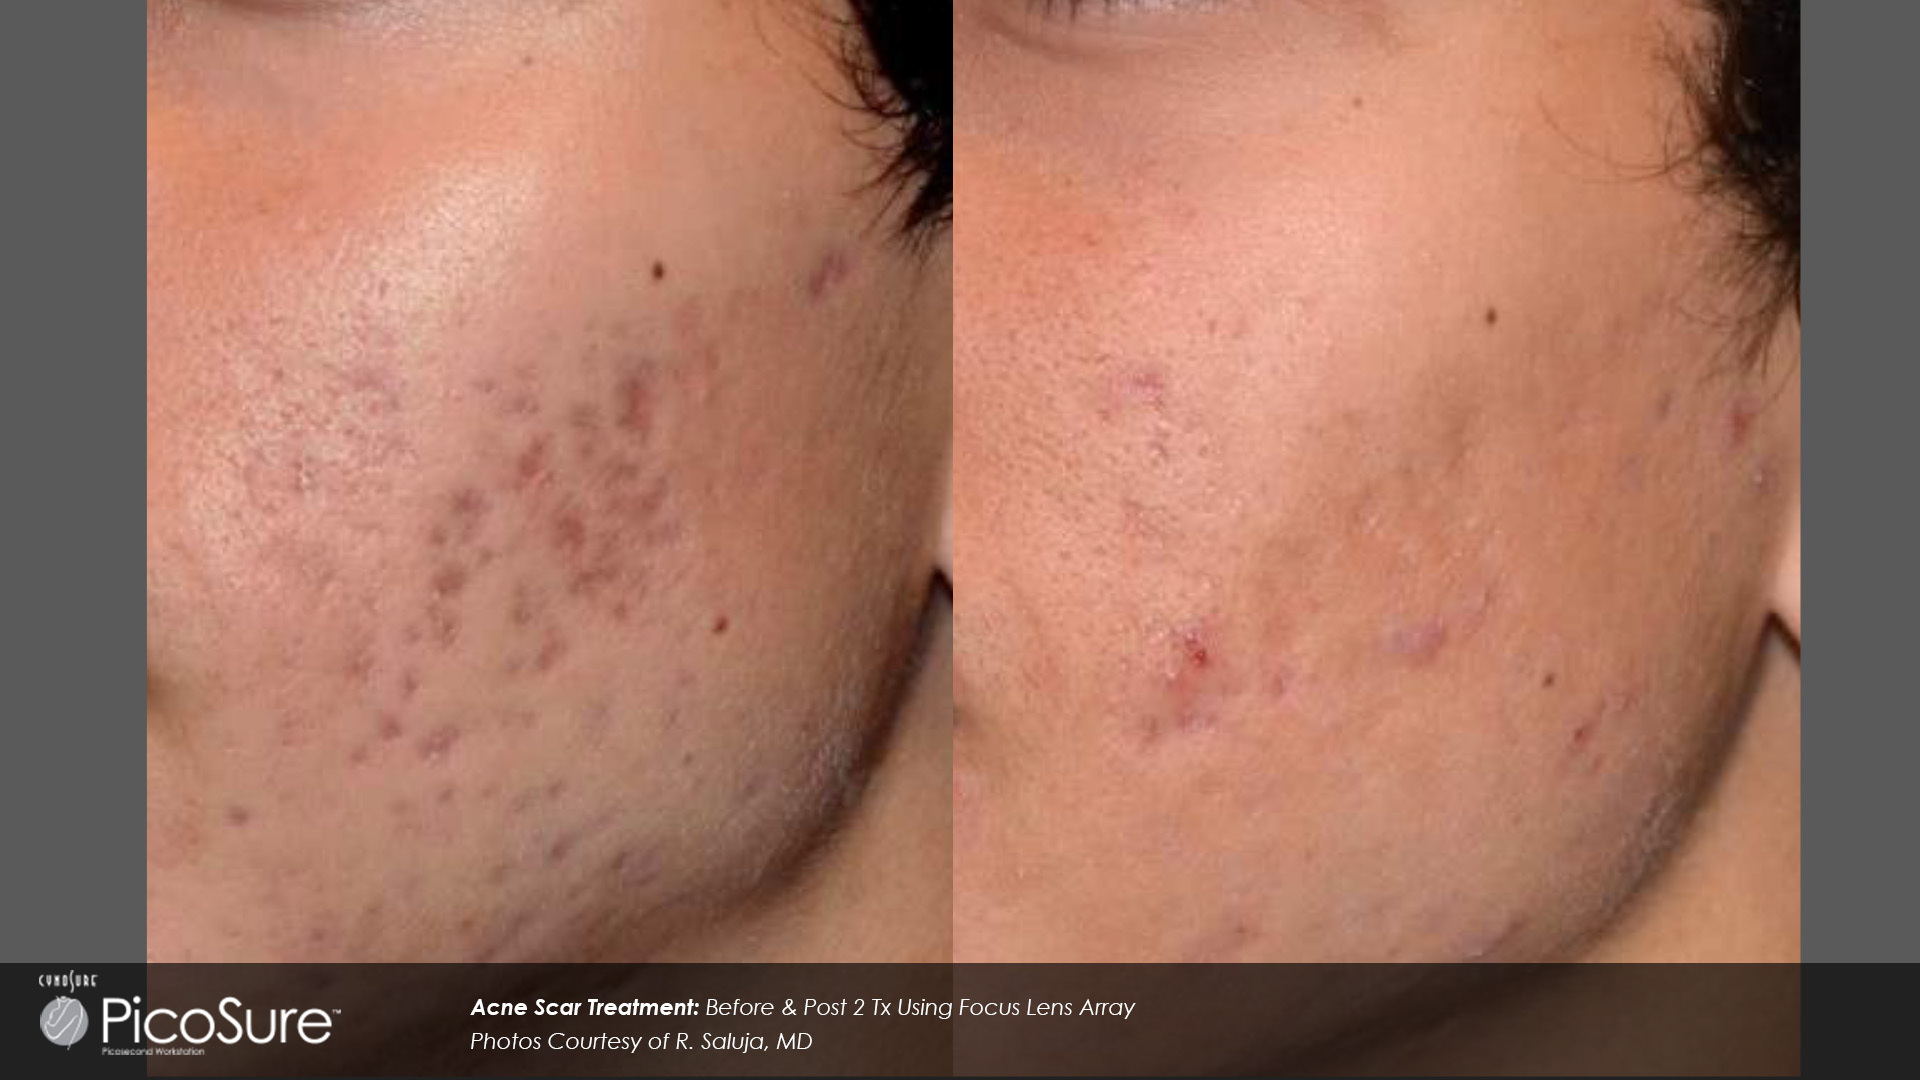 PicoSure acne scars before and after